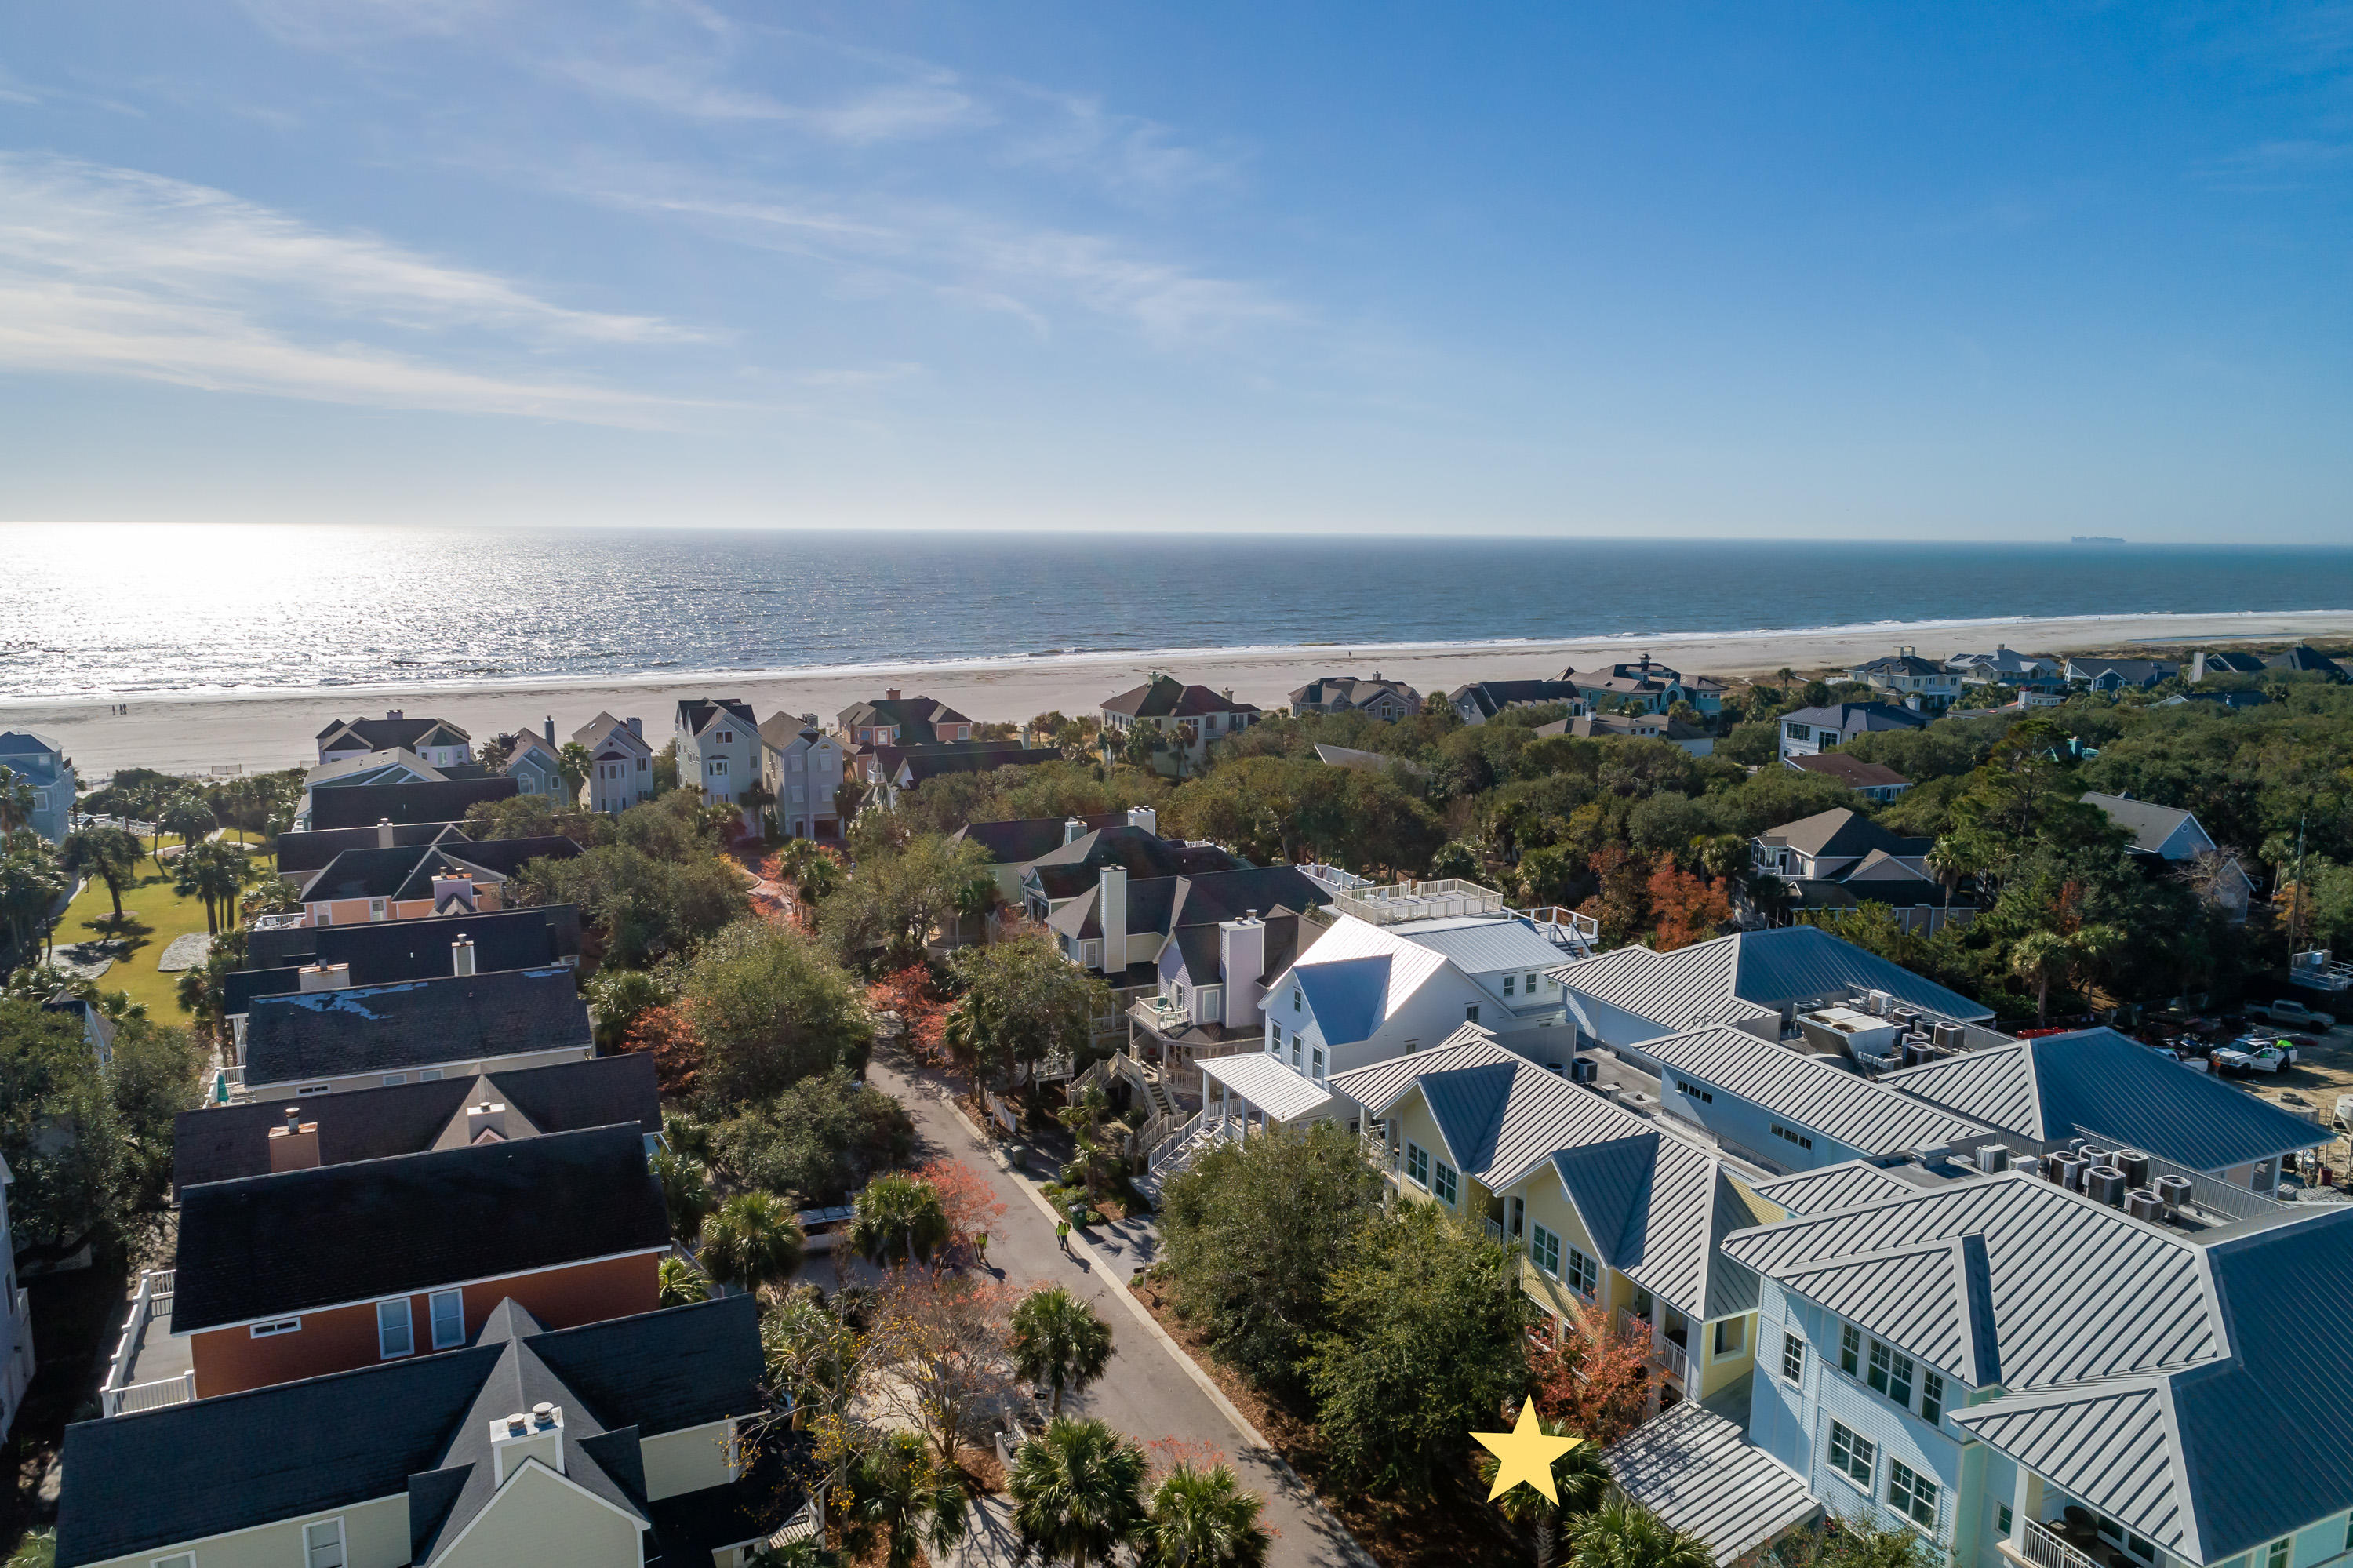 105-G Village At Wild Dunes UNIT Vg105 Isle Of Palms, SC 29451